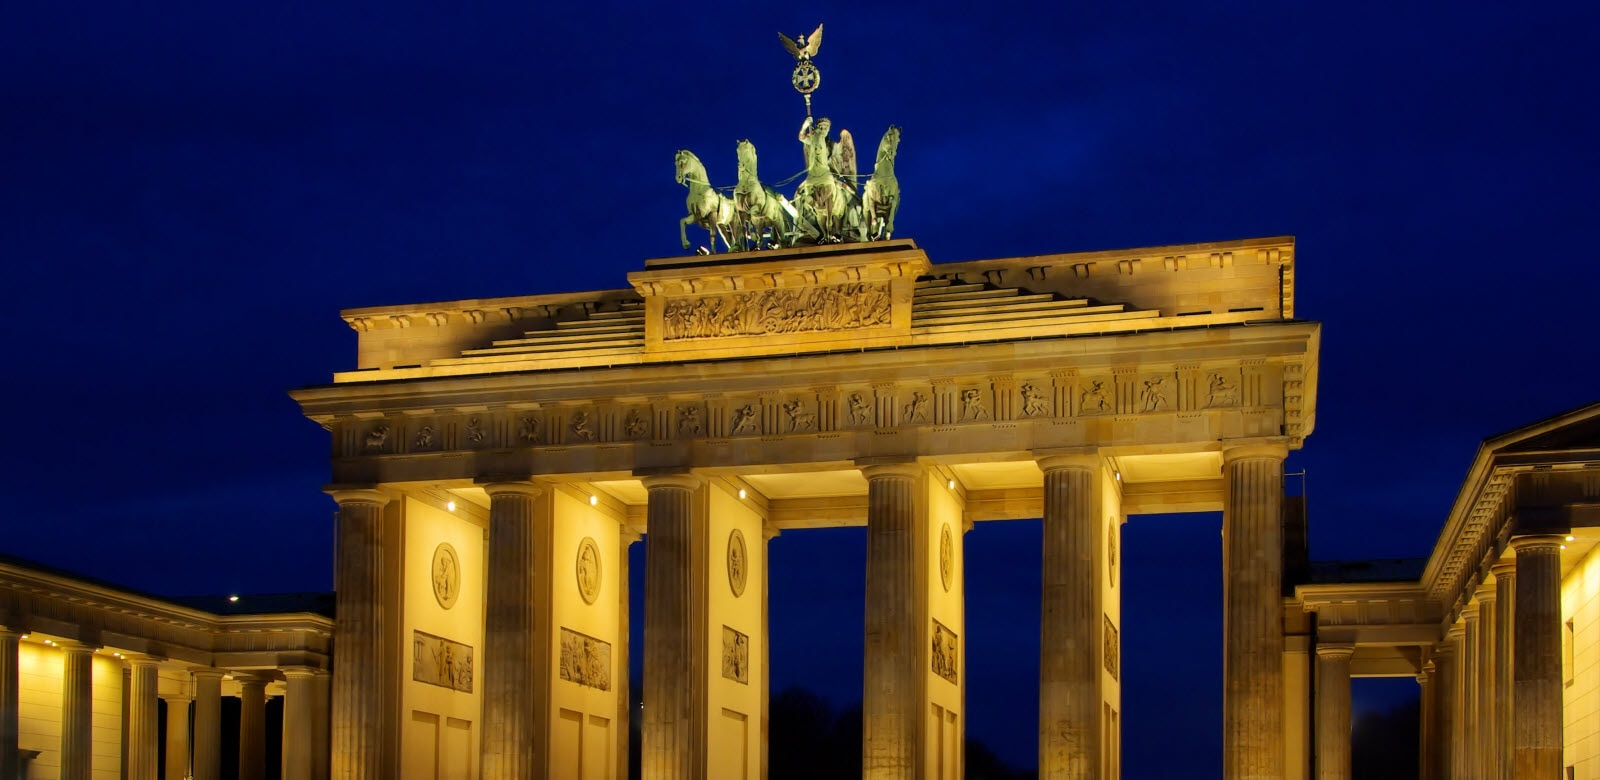 Berlin Brandenburger Tor at night.